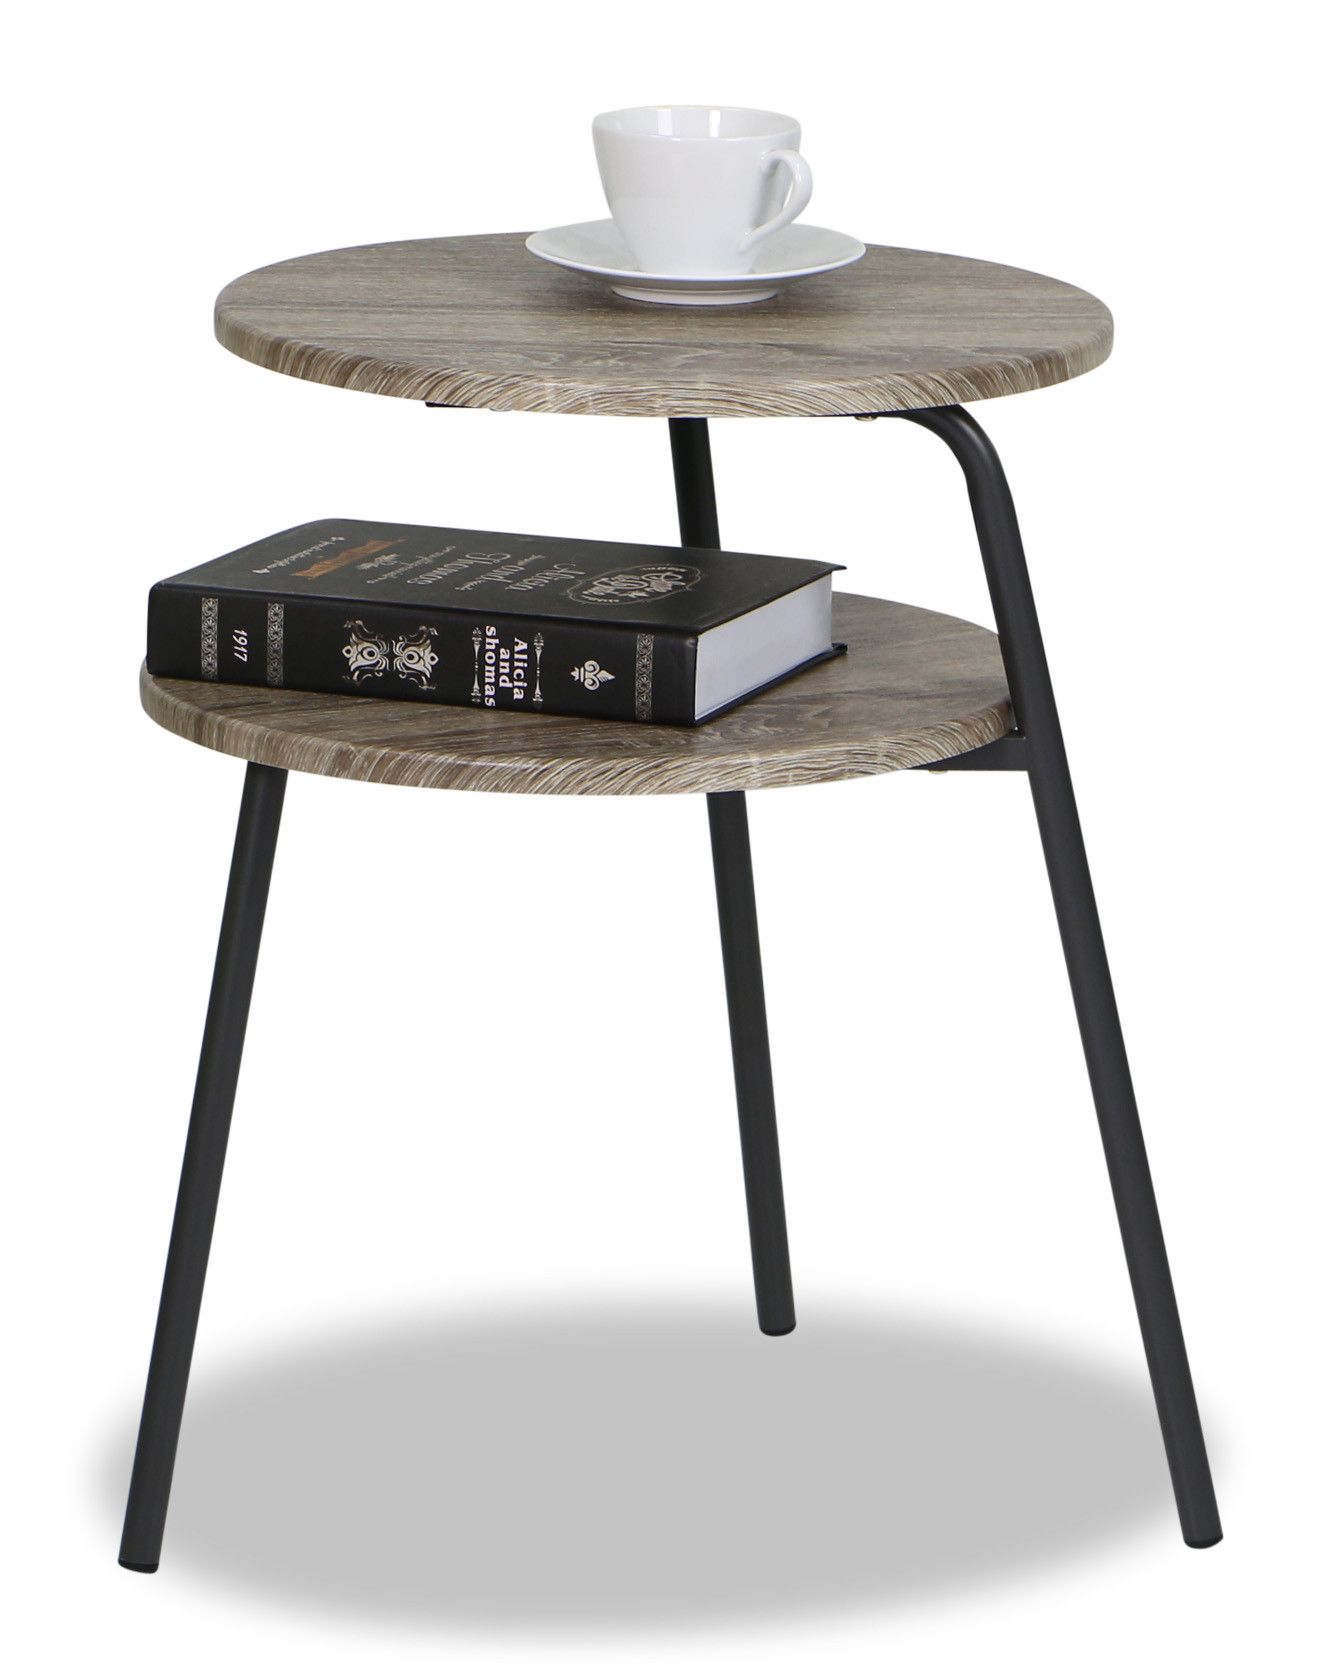 Delicieux Dossi Double Deck Side Table In Sonoma Oak